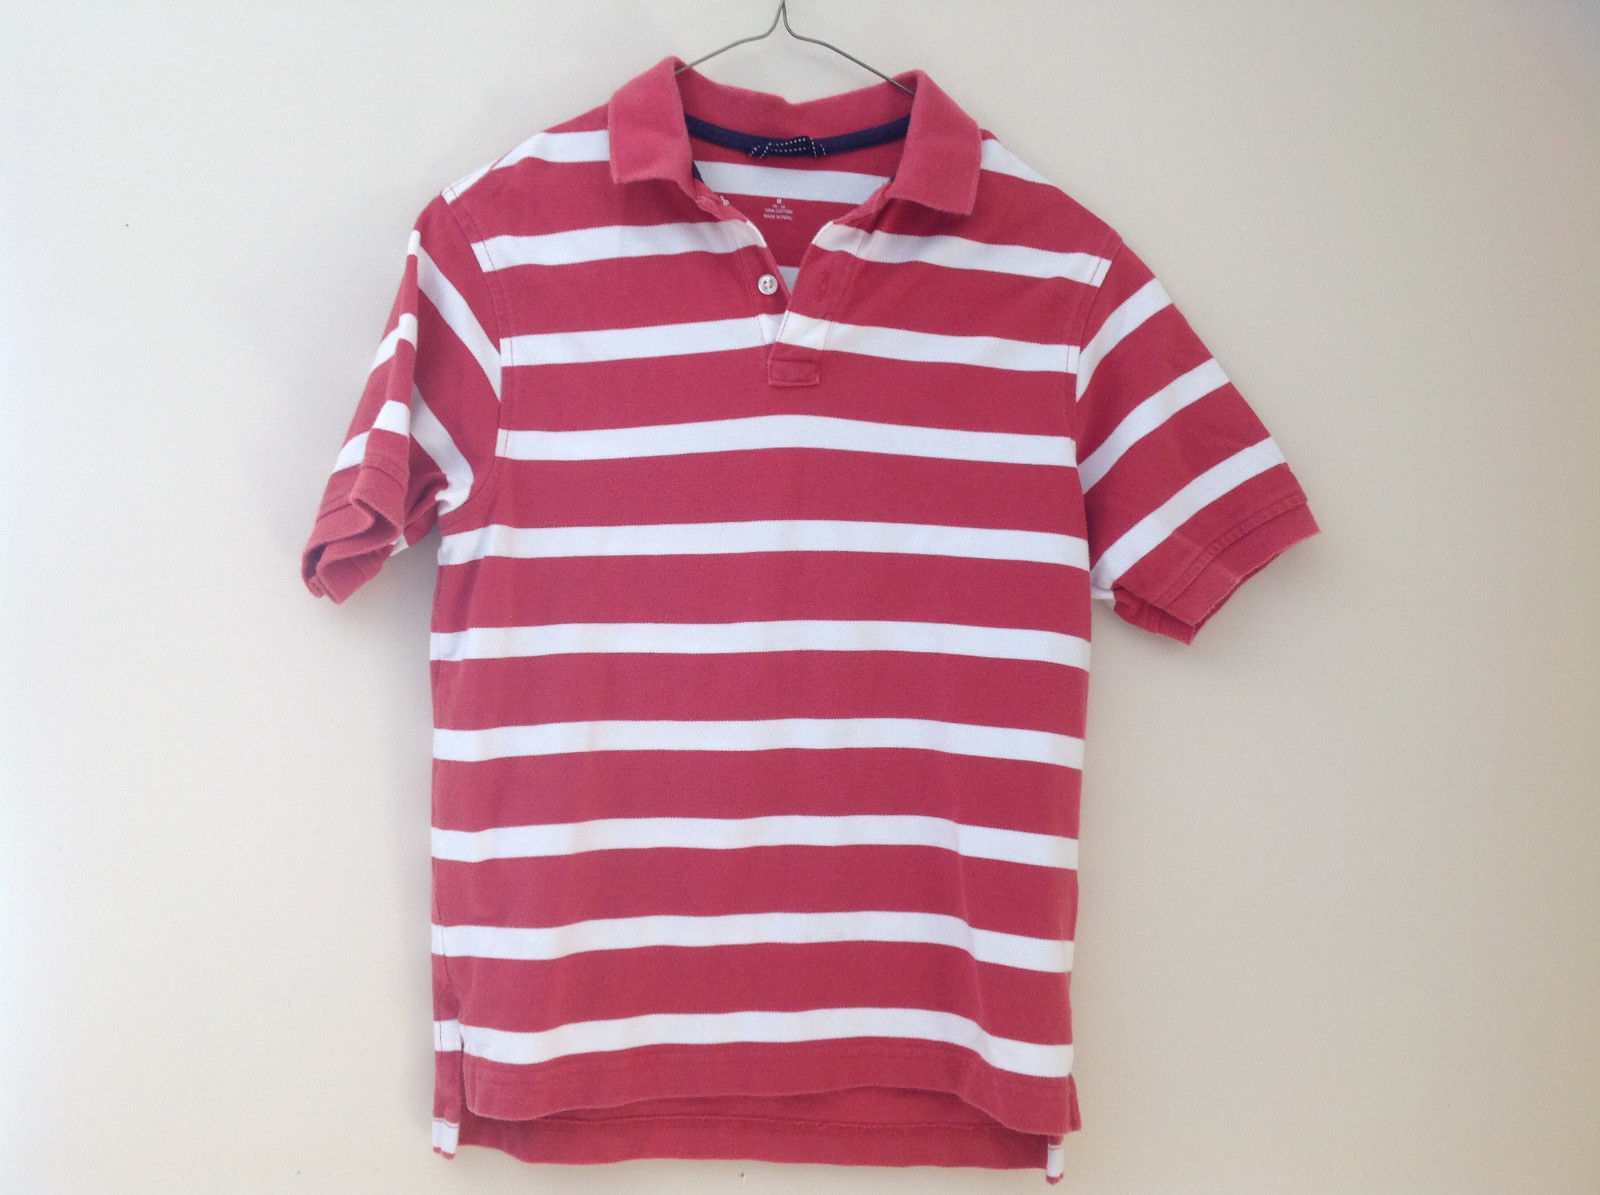 lands end red and white striped short sleeve polo shirt